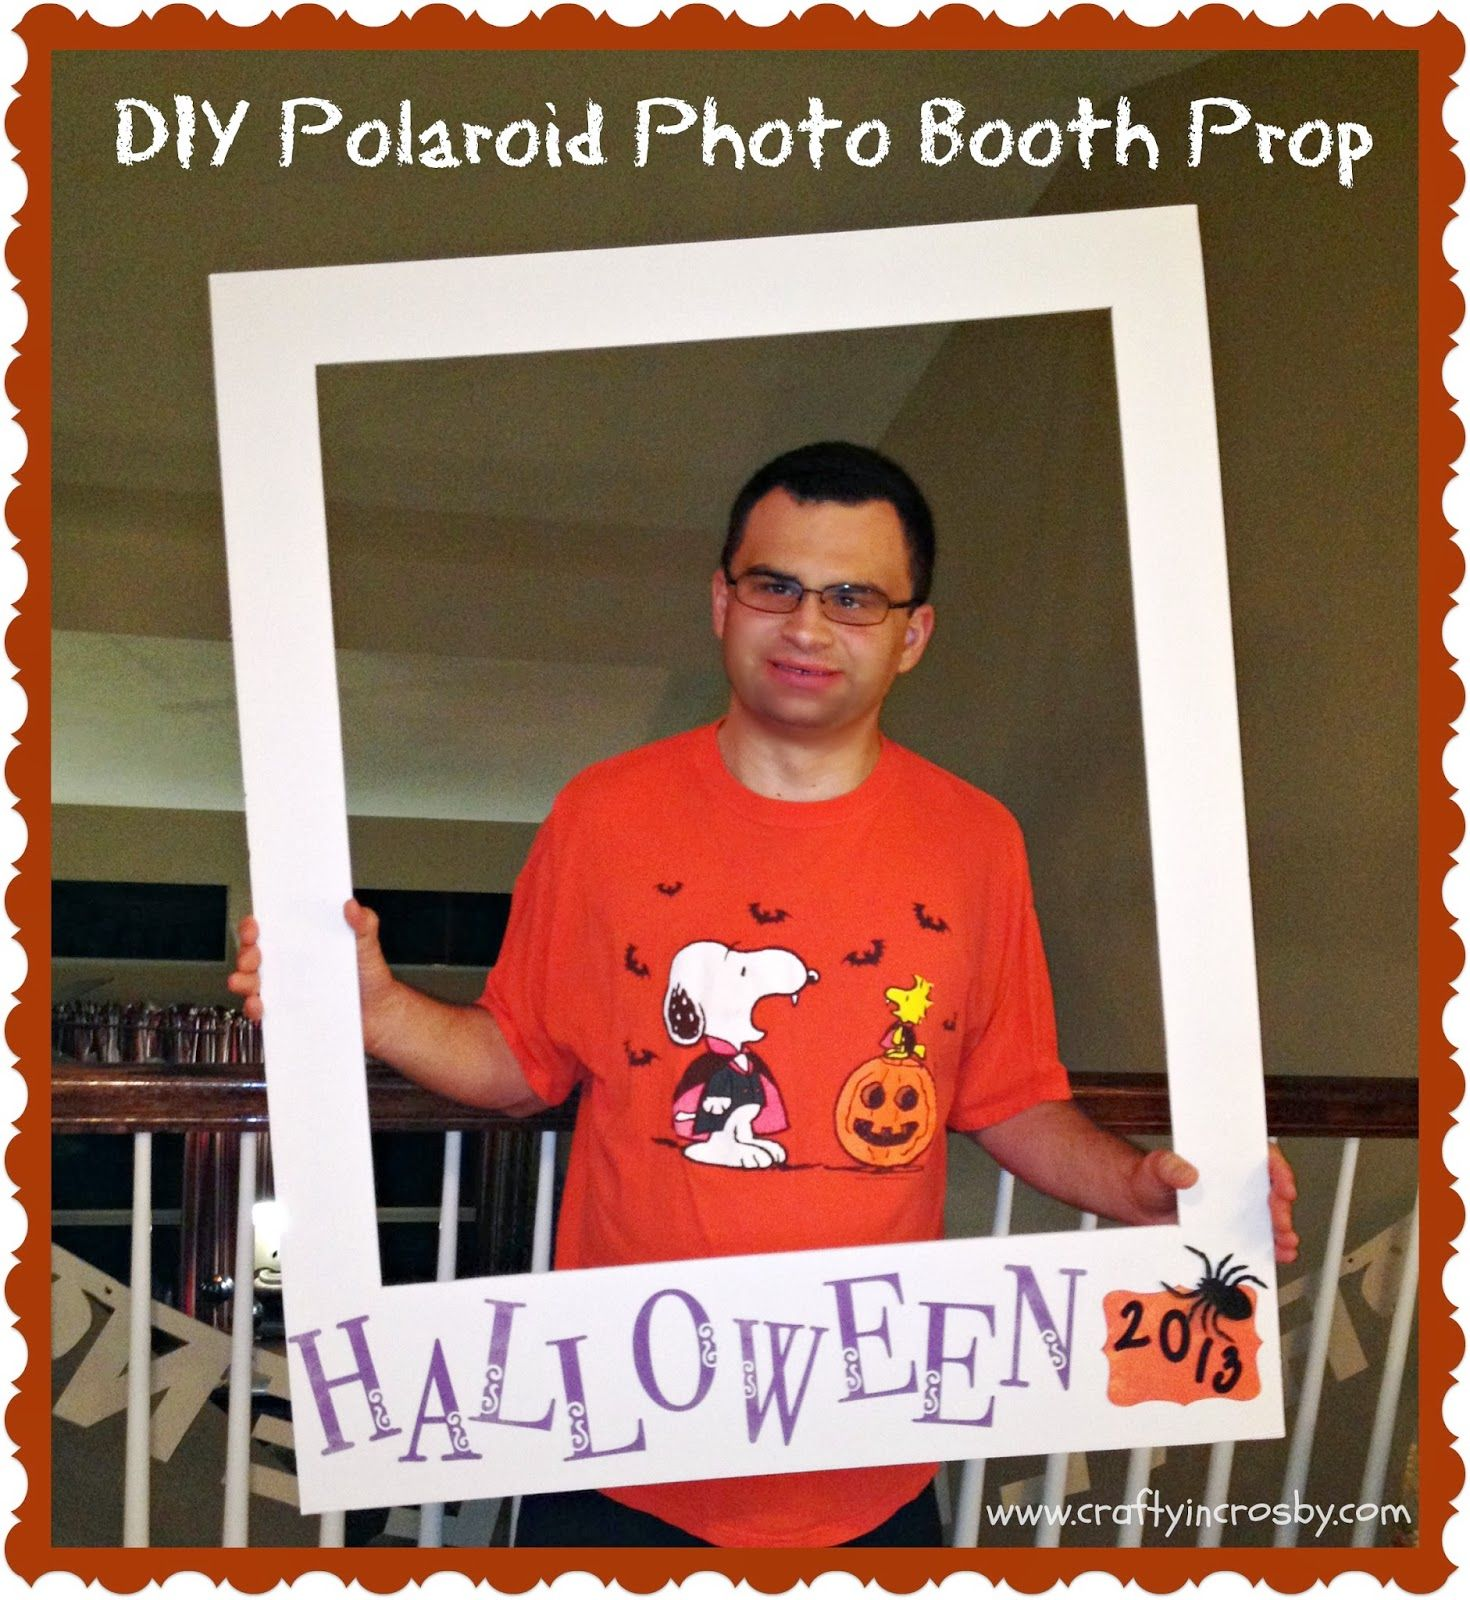 DIY Polaroid Booth Prop Finally Instructions on how to make